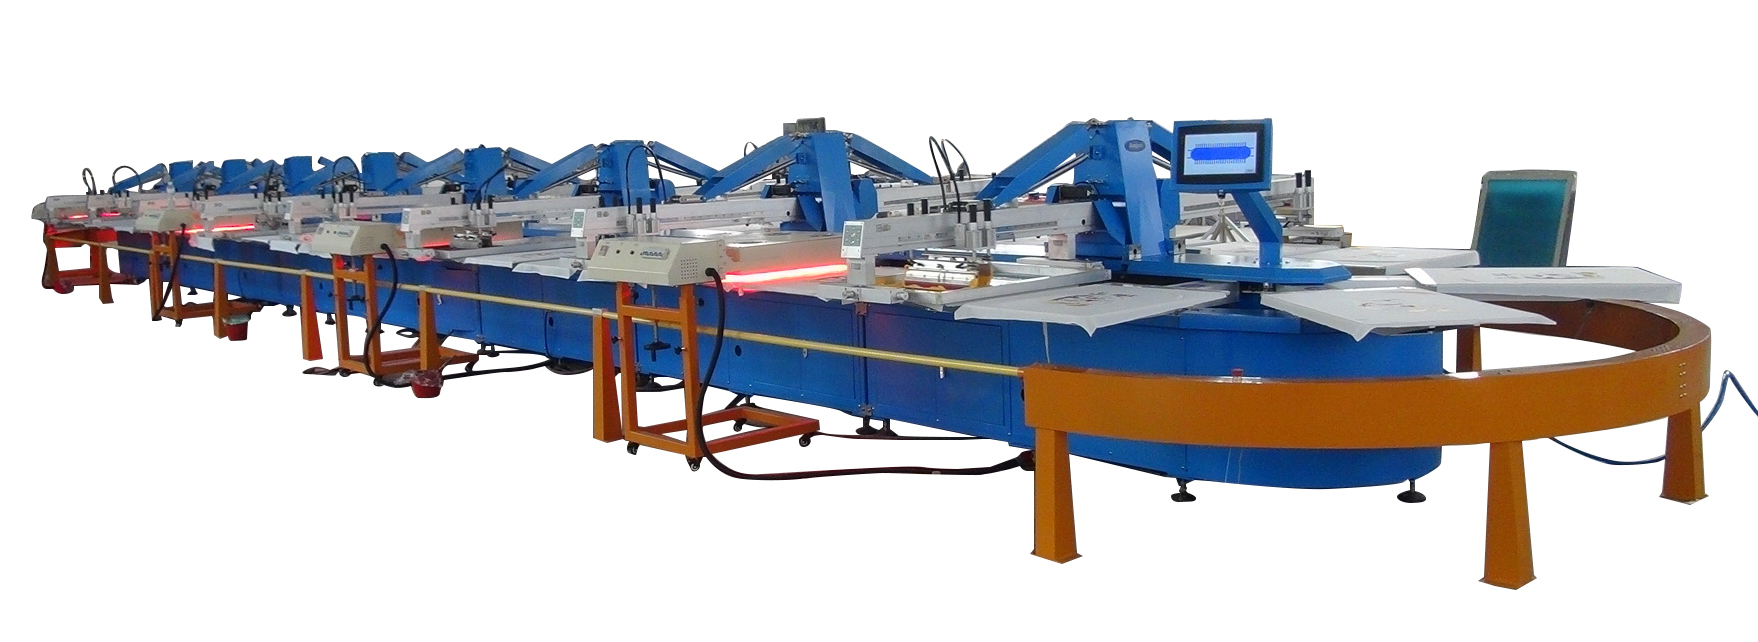 Big Production Ability 8 ColorsFilter Automatic Carousel Screen Printing Machine